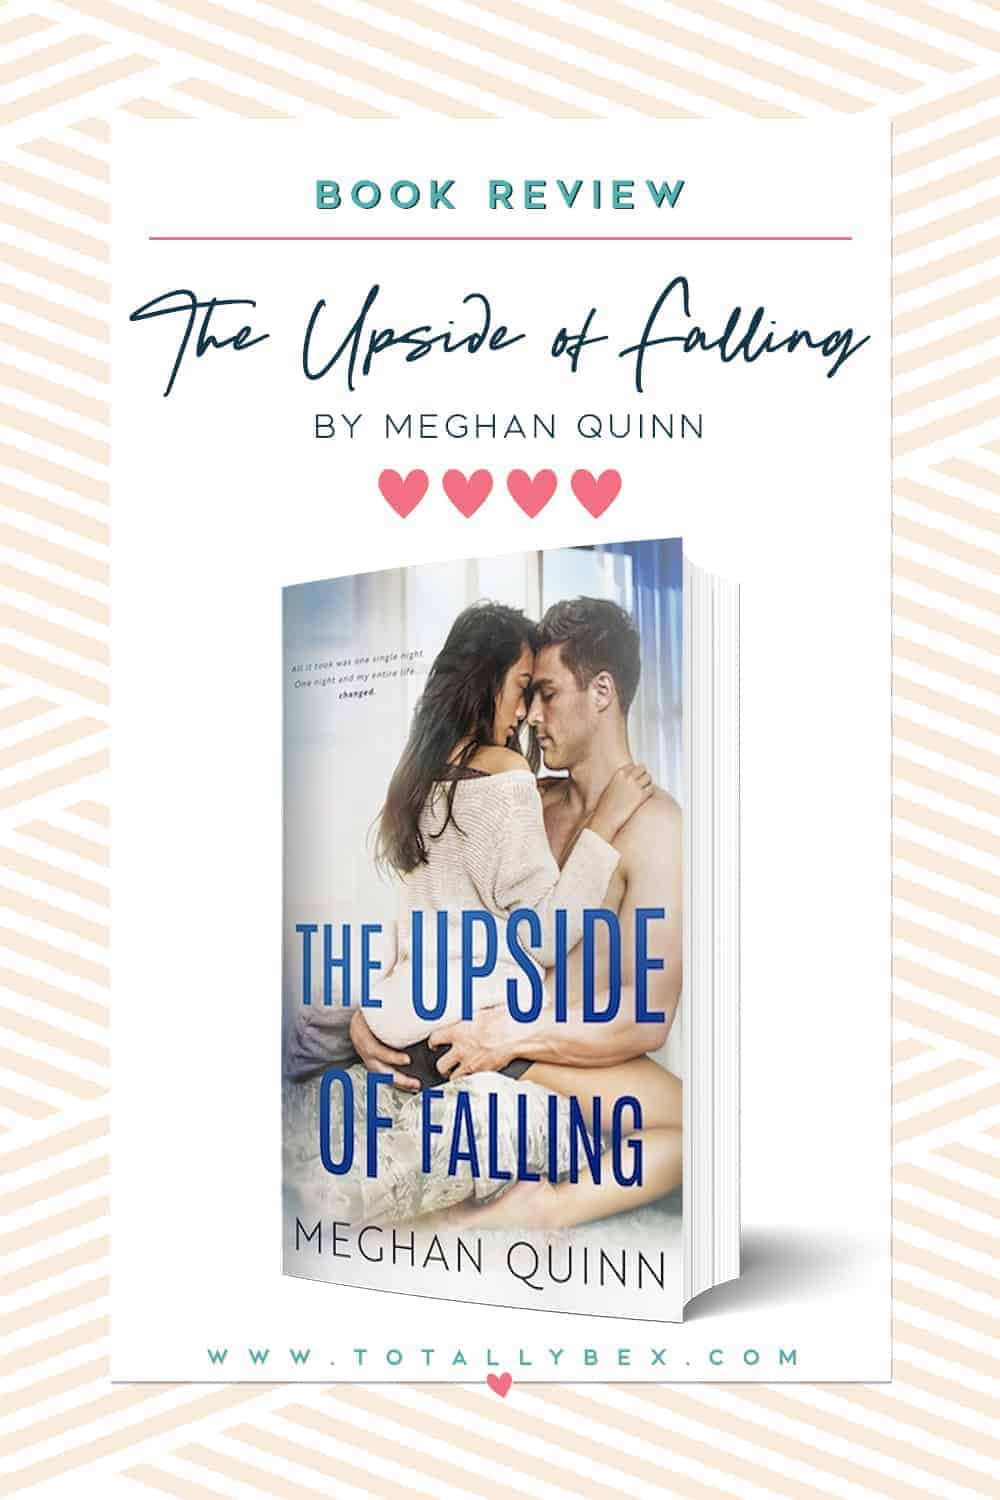 The Upside of Falling by Meghan Quinn-BookReview